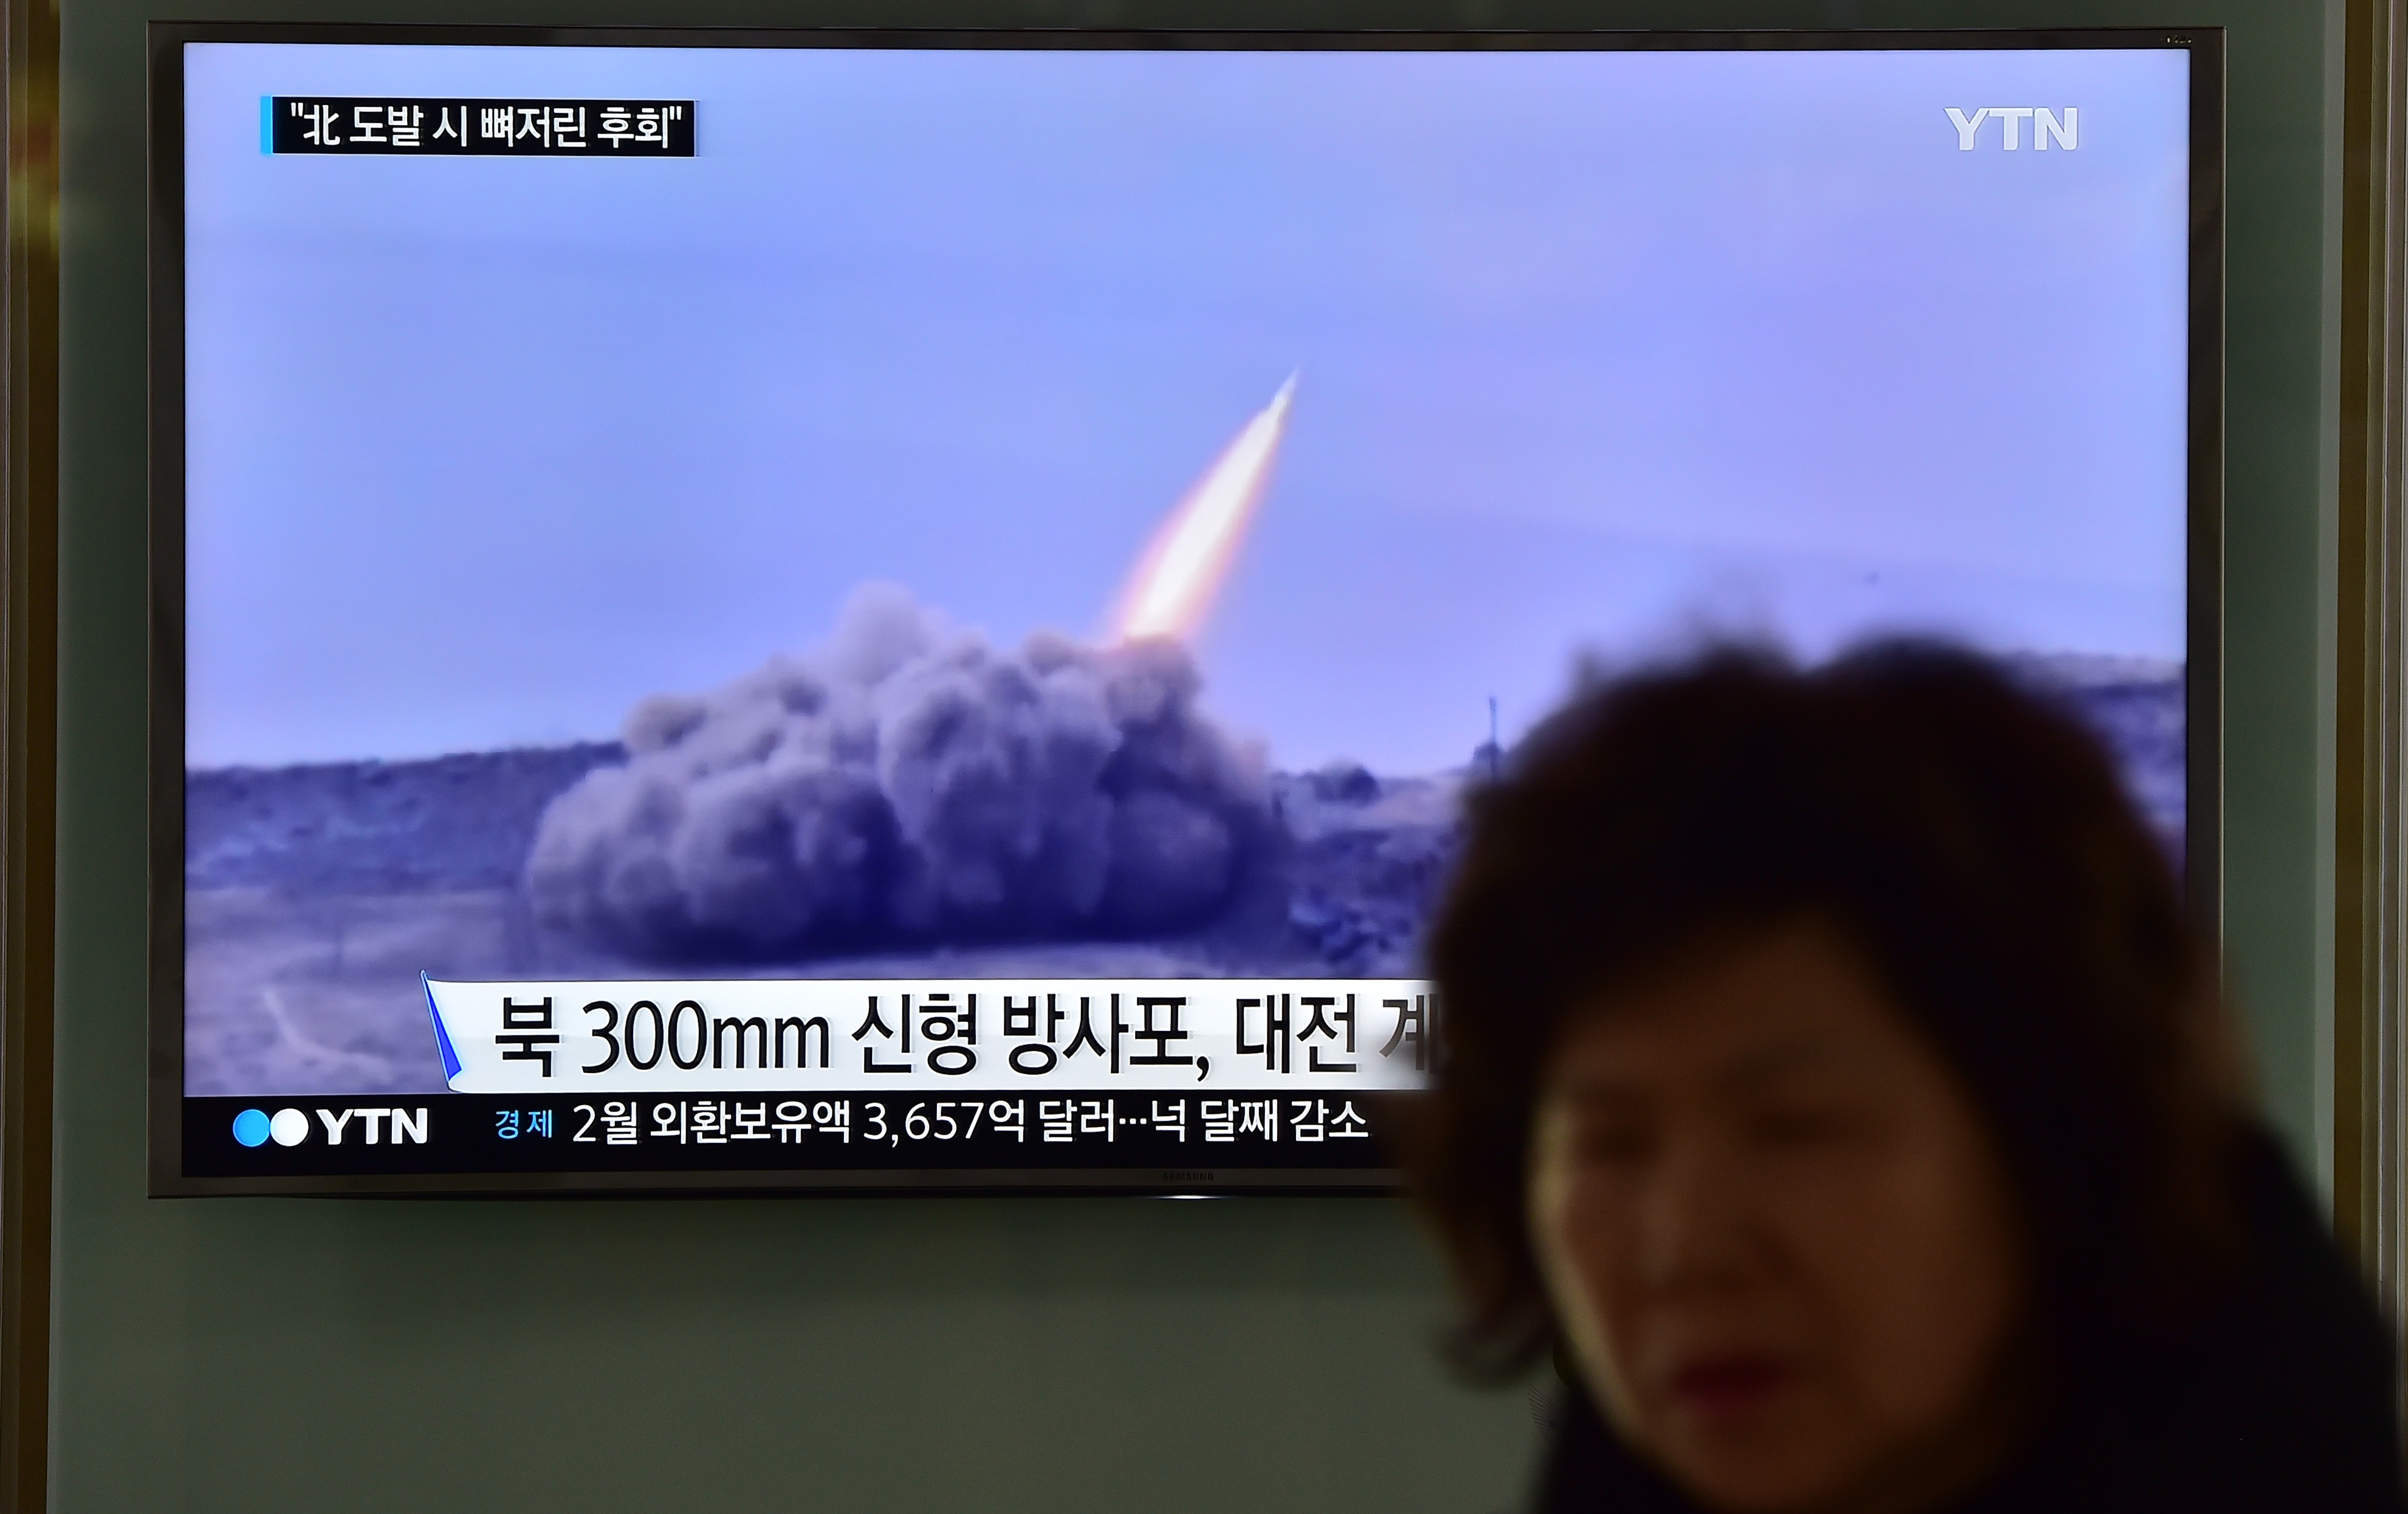 A woman walks past a public television screen, showing file footage of a North Korean missile, at a railway station in Seoul on March 4, 2016